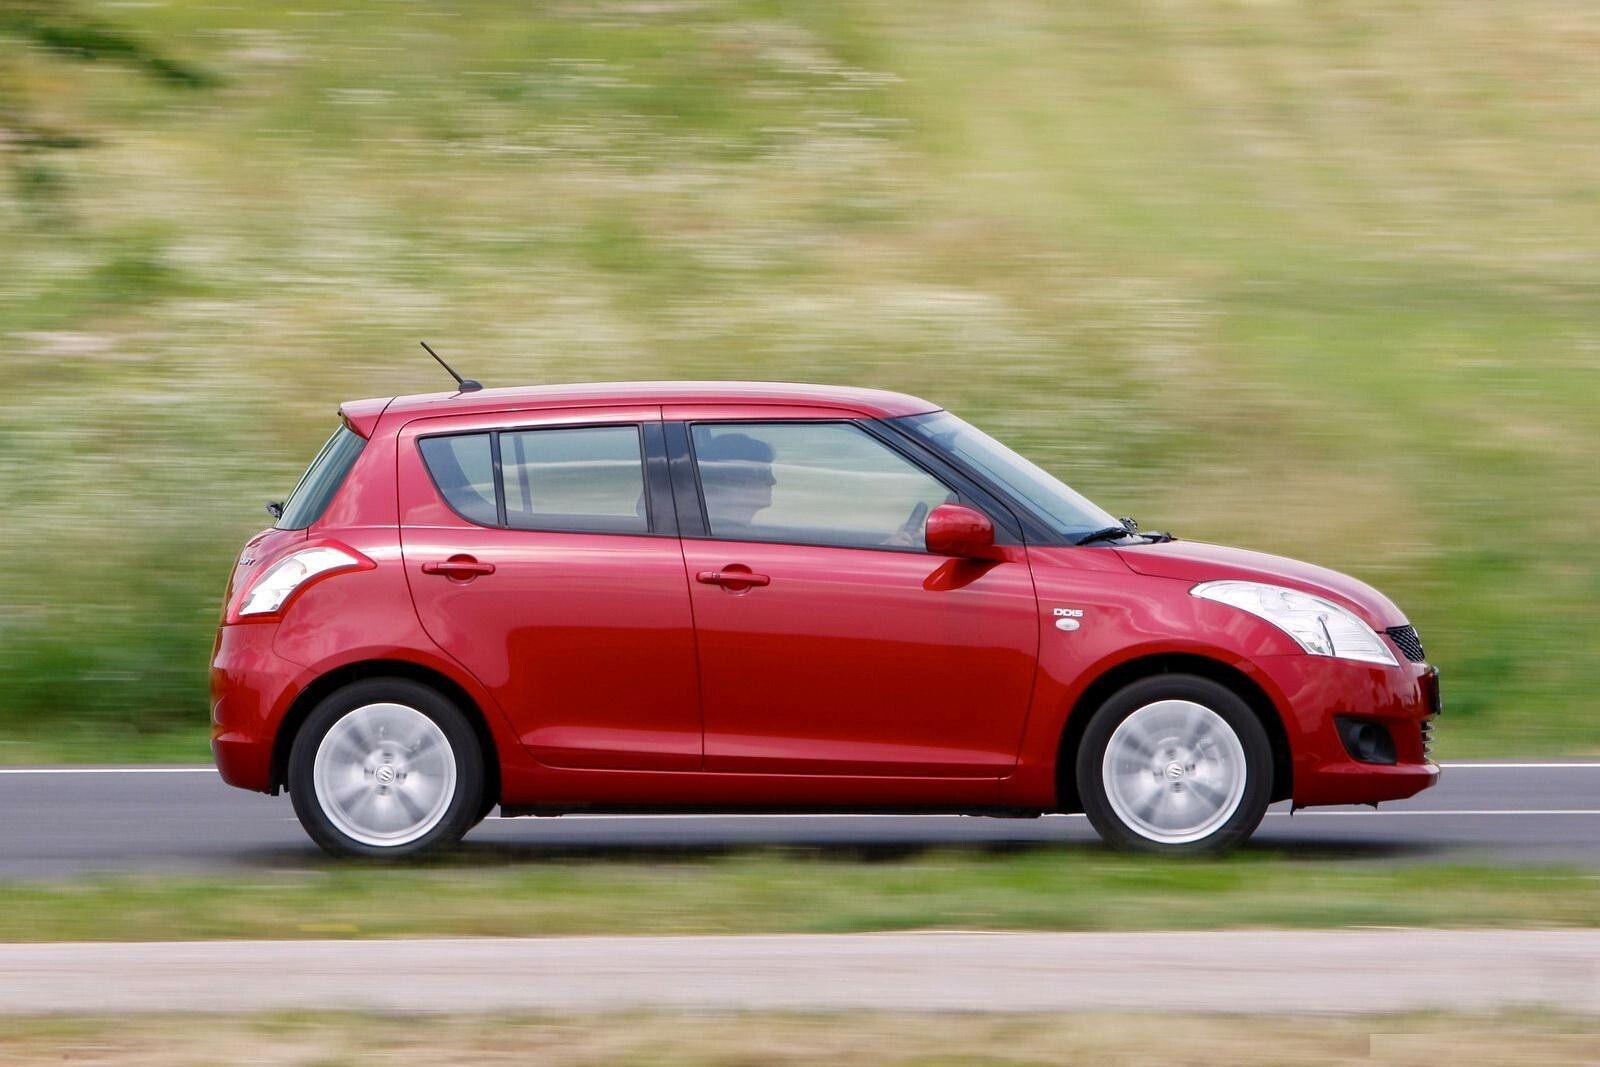 Red Suzuki Swift Car Wallpaper Hd Wallpapers